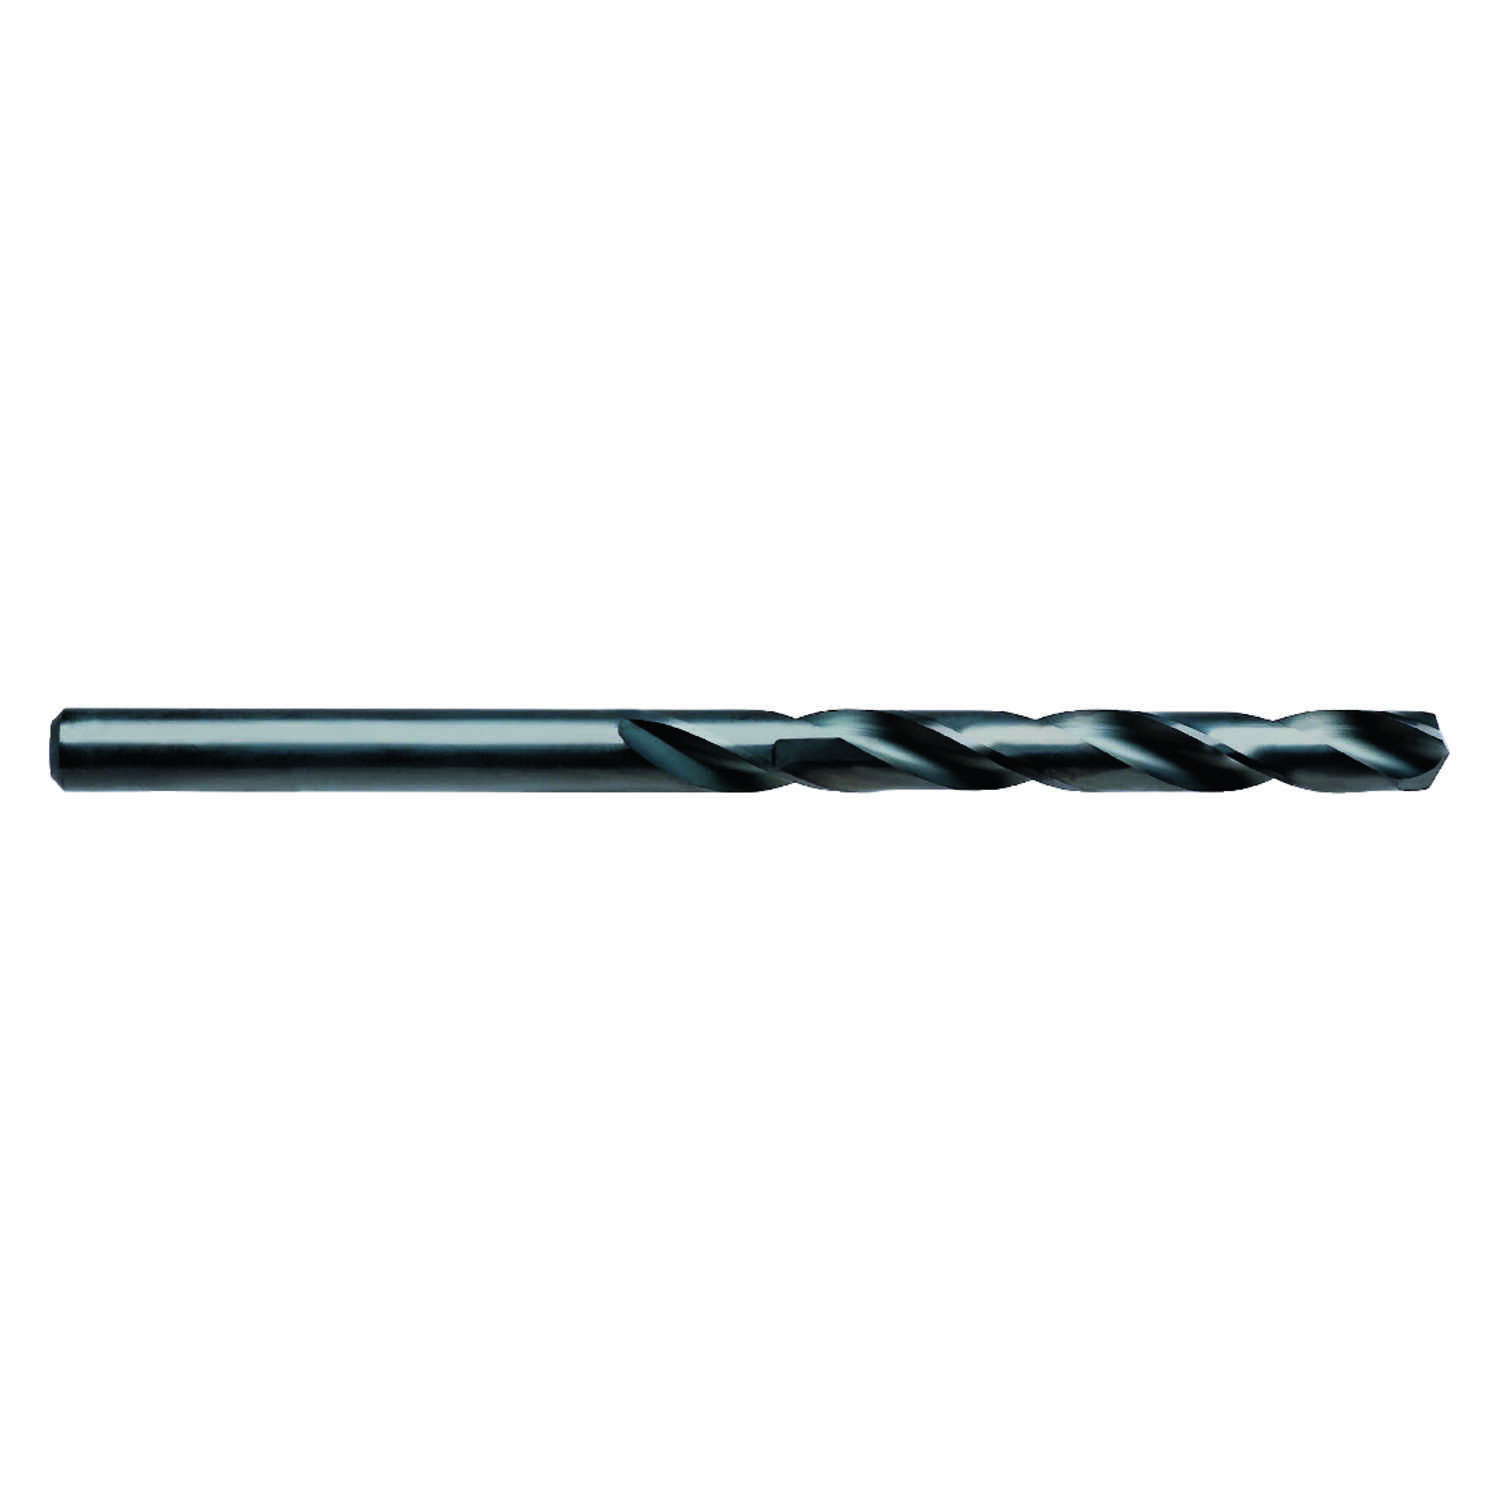 Irwin  3/8 in. Dia. x 6 in. L High Speed Steel  Split Point Drill Bit  1 pc.